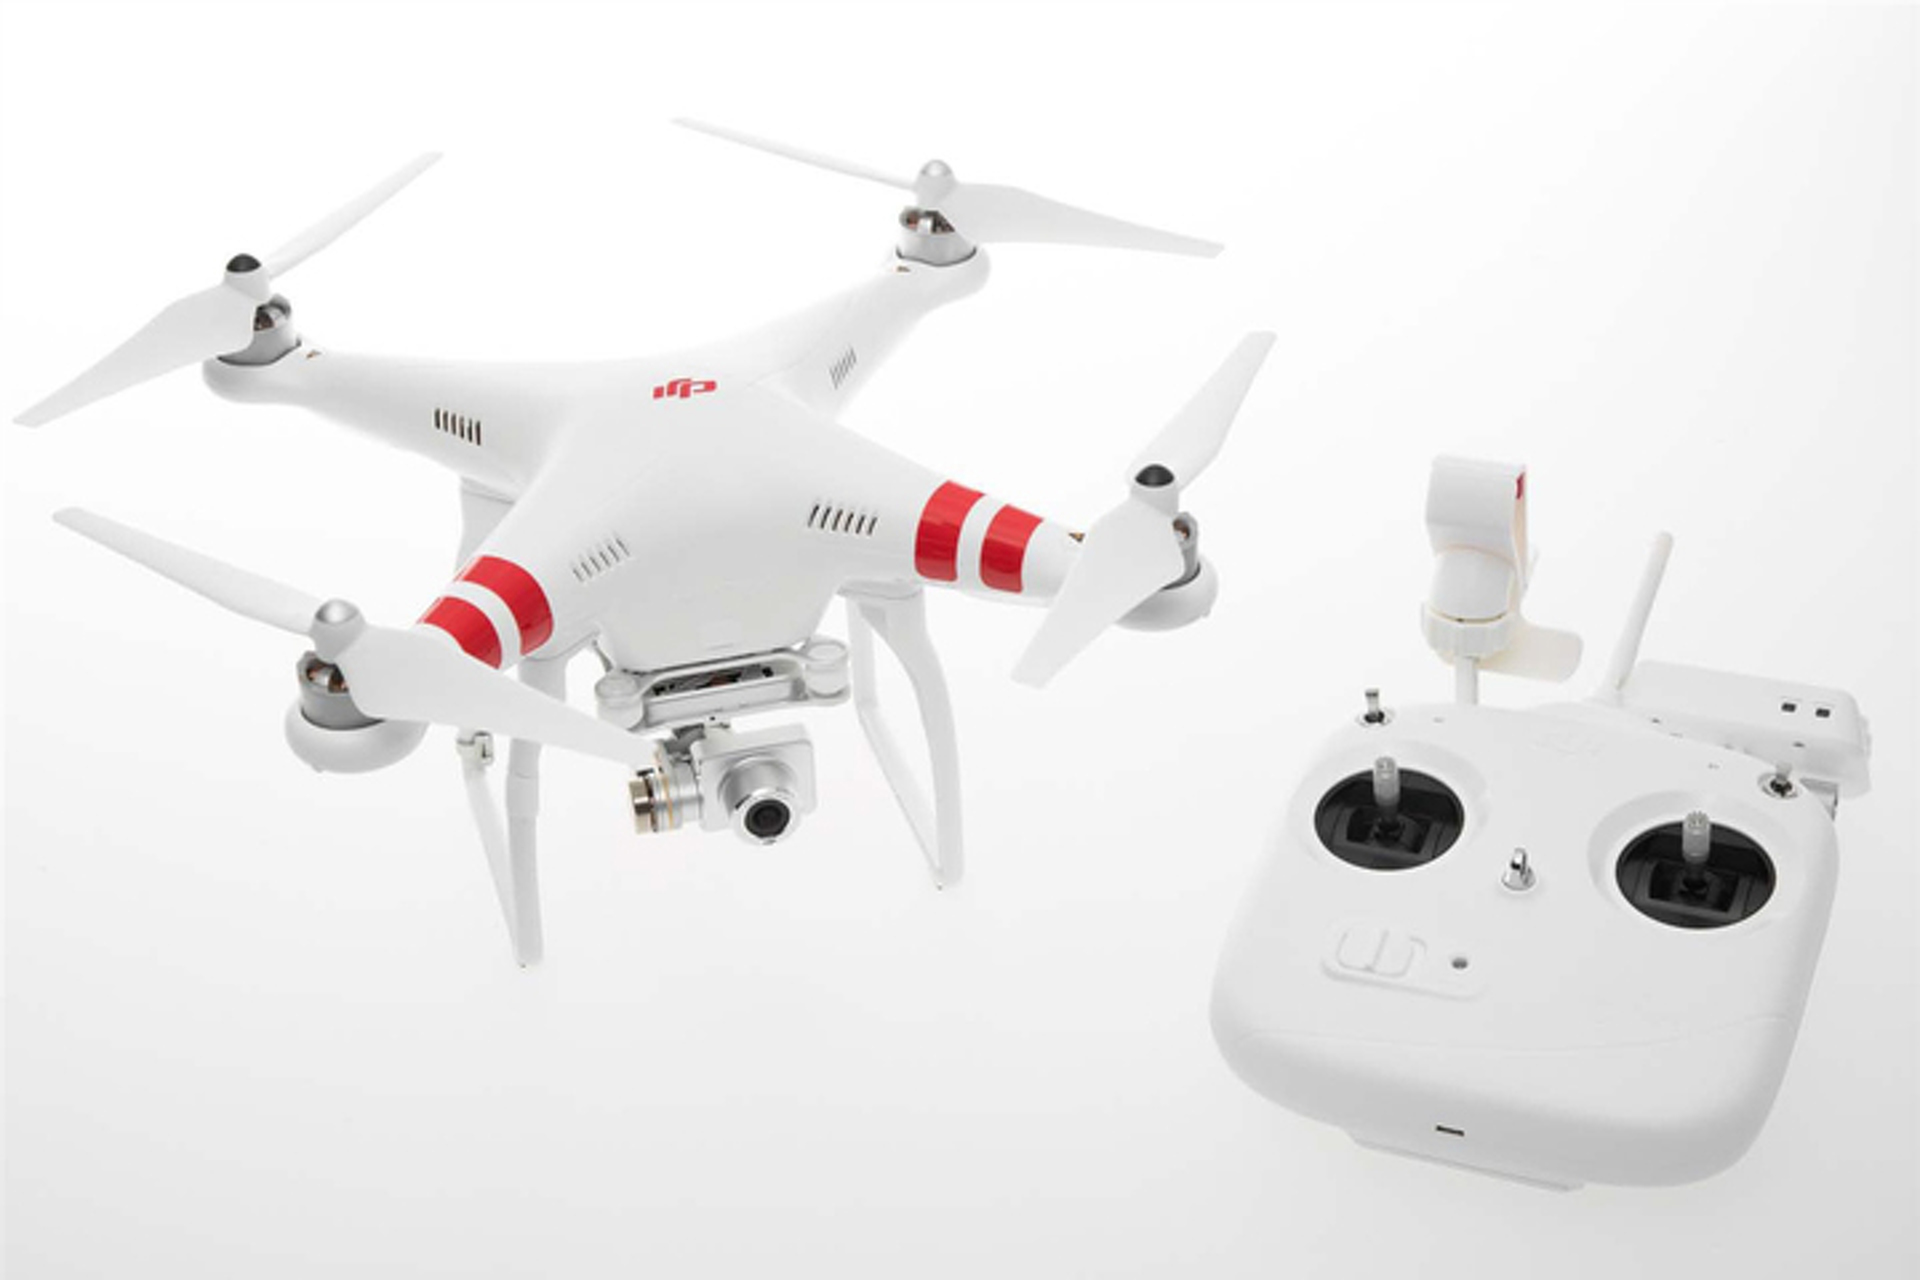 The List: 5 Best Camera Drones and Quadcopters